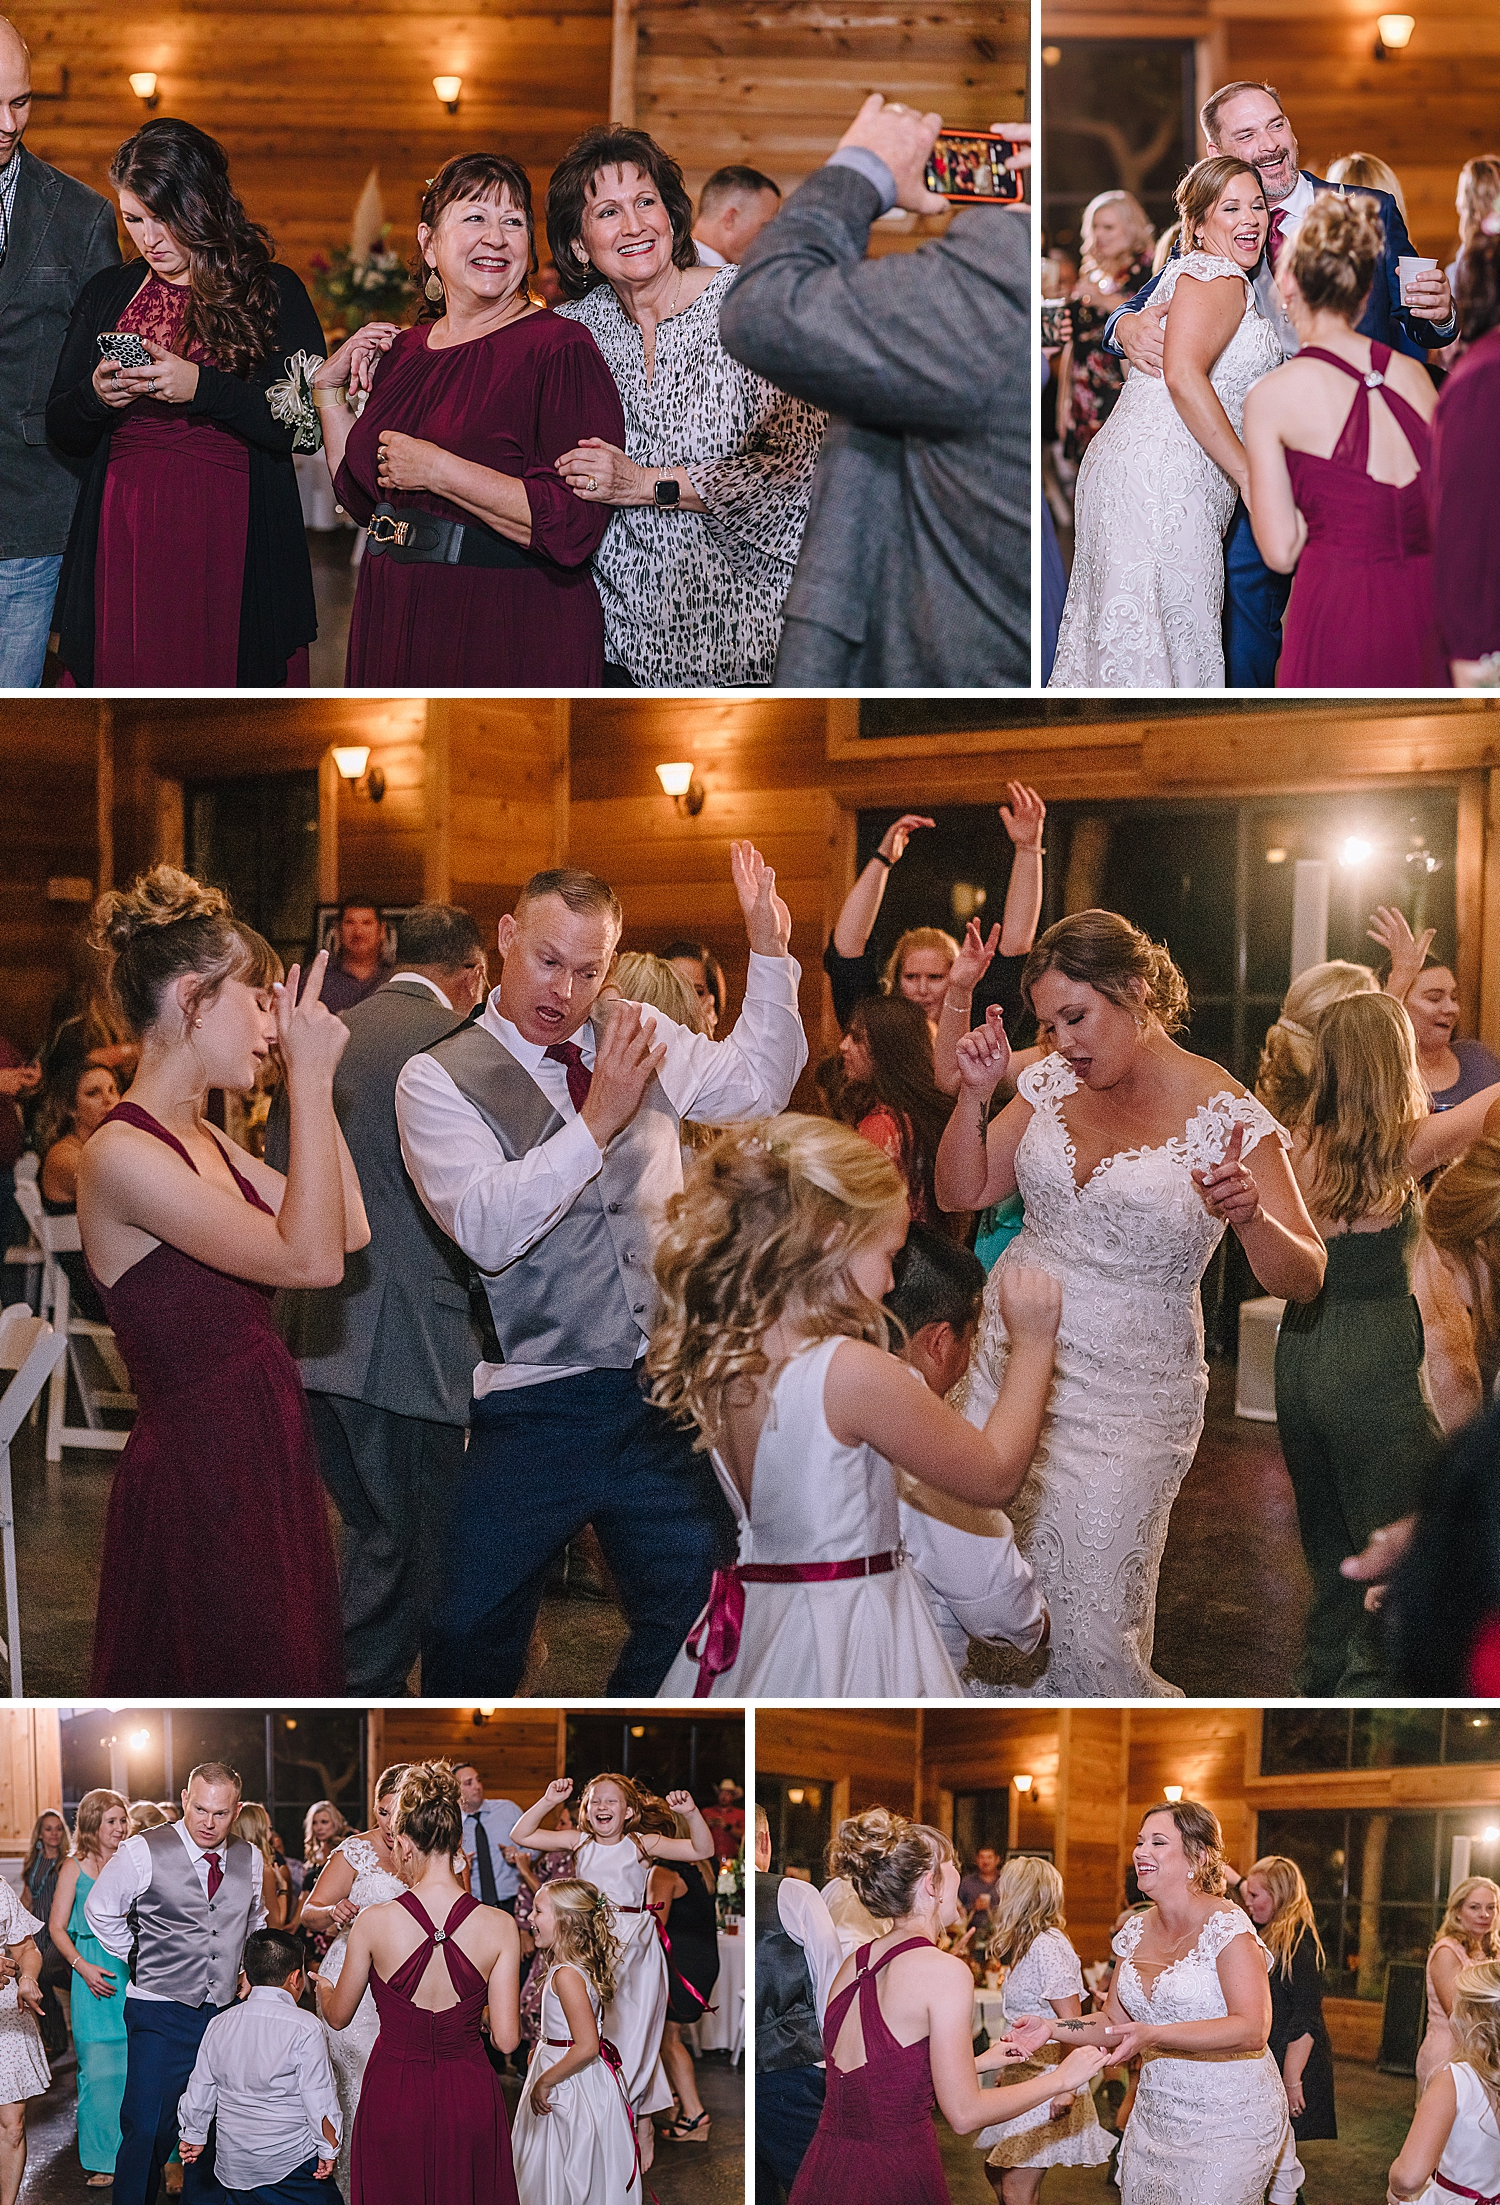 Geronimo-Oaks-Wedding-Venue-Seguin-Texas-Elegant-Navy-Burgundy-Wedding-Carly-Barton-Photography_0069.jpg